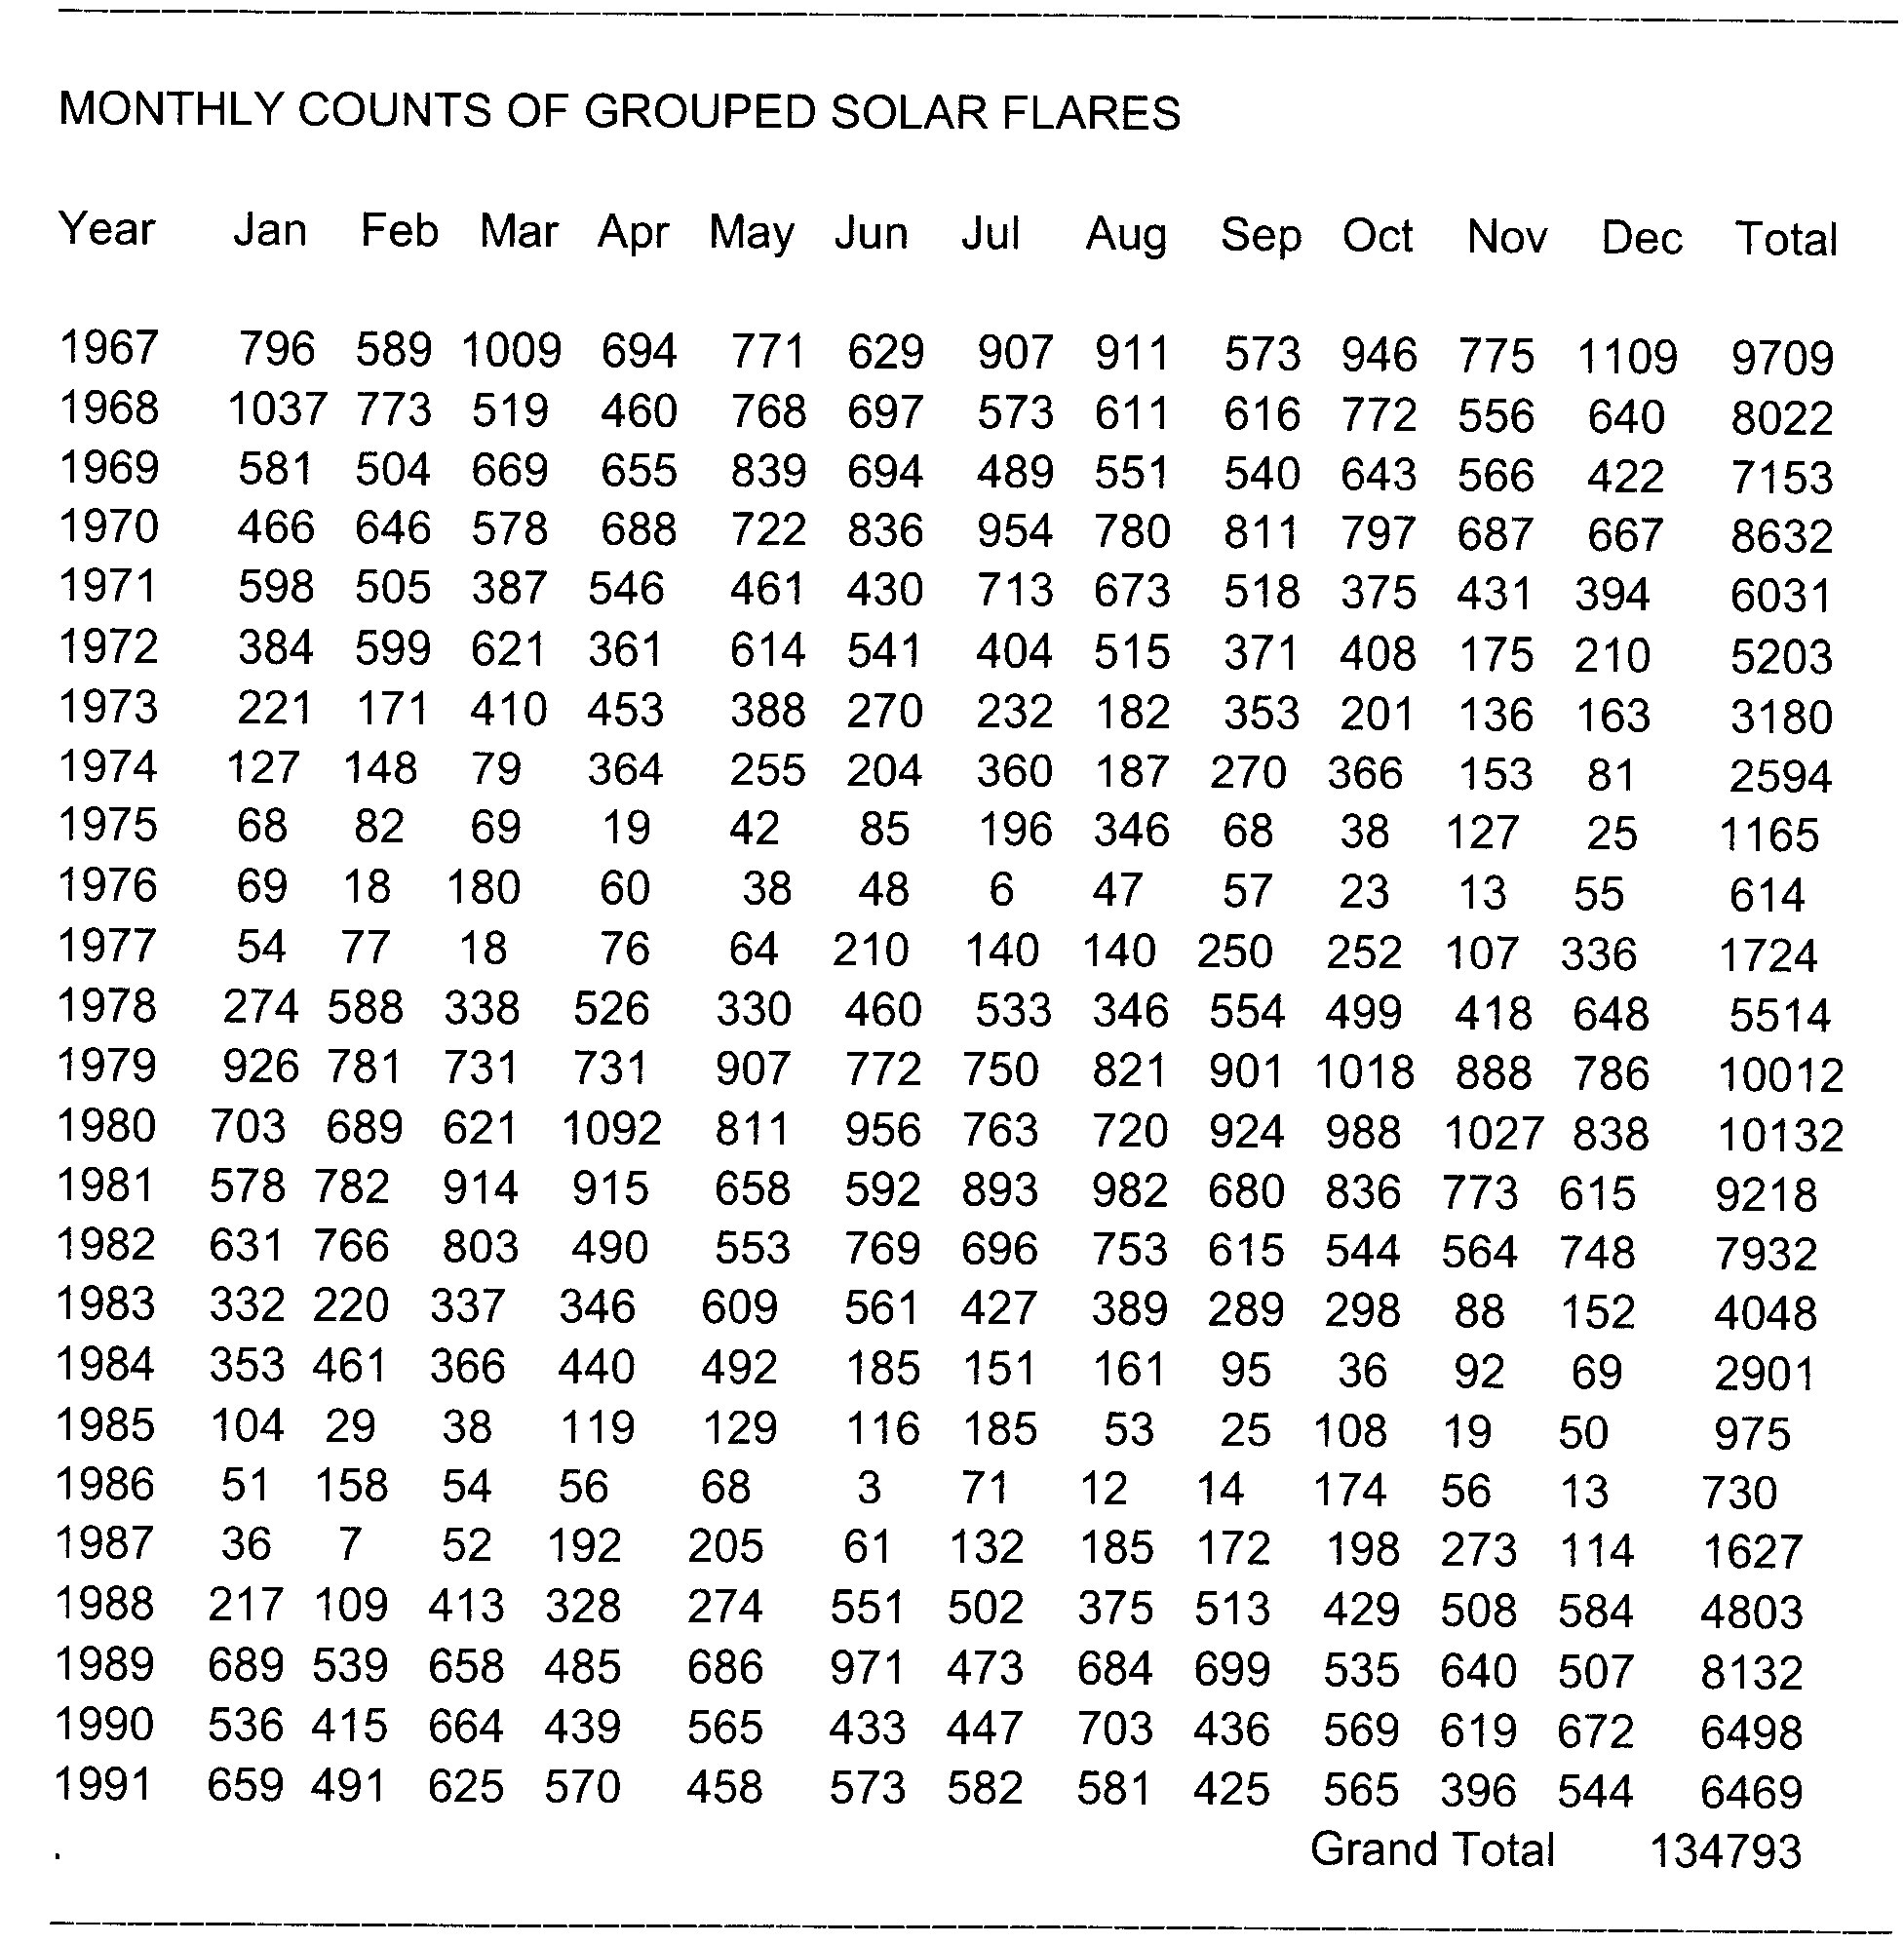 MONTHLY COUNTS OF GROUPED SOLAR FLARES-02